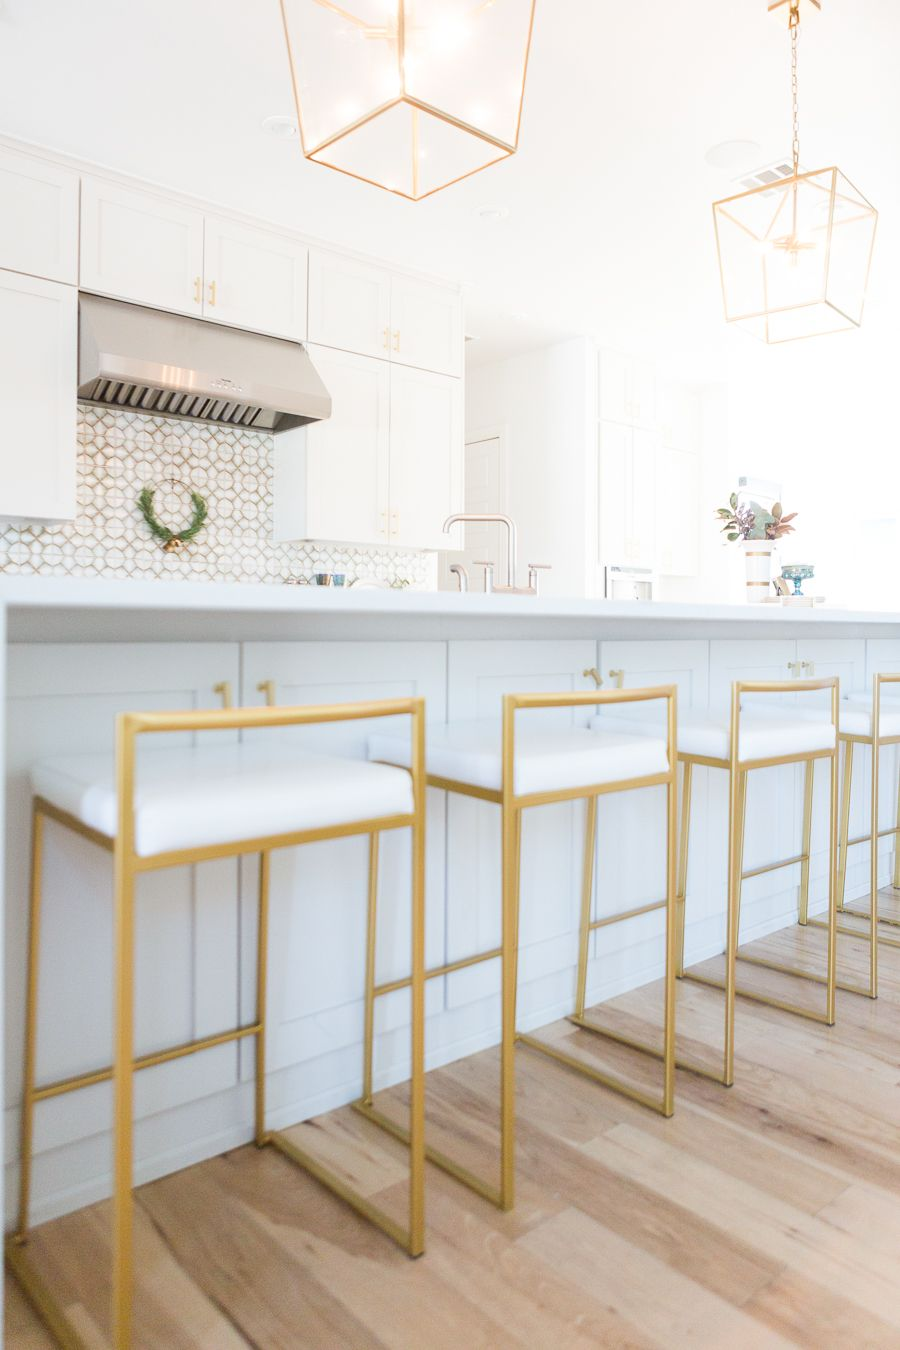 10 Affordable Gold Bar Stools For Home Design Cc And Mike Lifestyle And Design Blog In 2020 Gold Bar Stools Bar Chairs Kitchen Dinning Room Bar